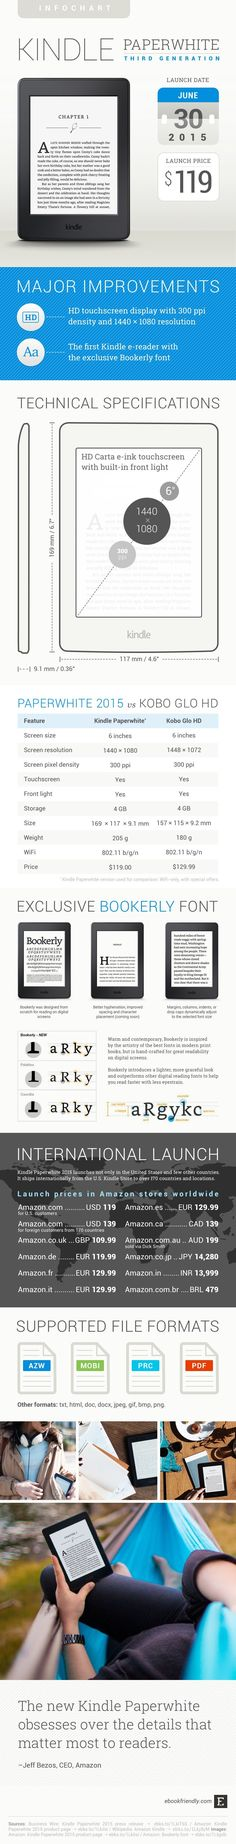 In this infographic you'll find everything you need to know about the new #Kindle Paperwhite